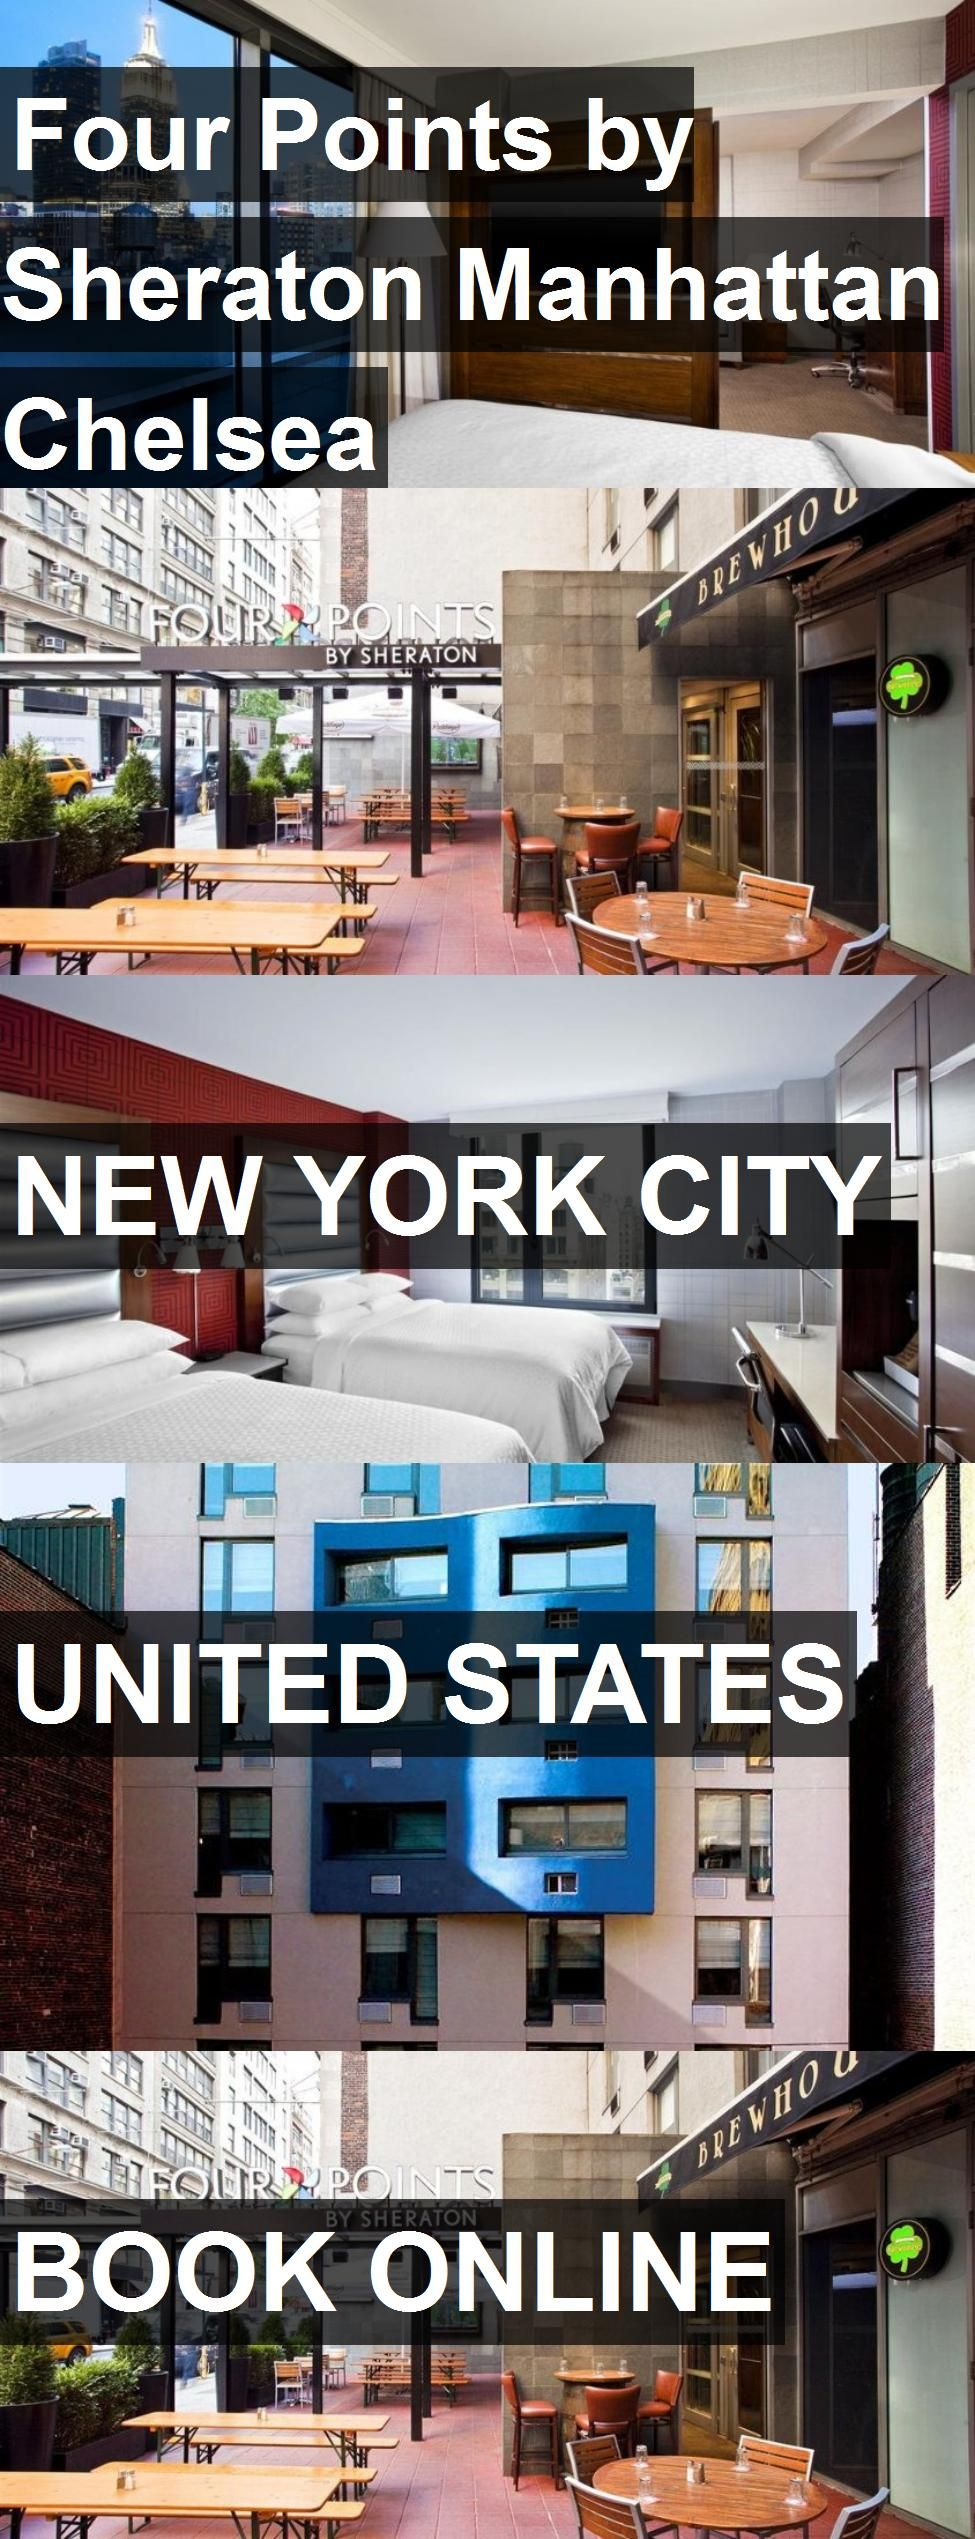 Hotel Four Points By Sheraton Manhattan Chelsea In New